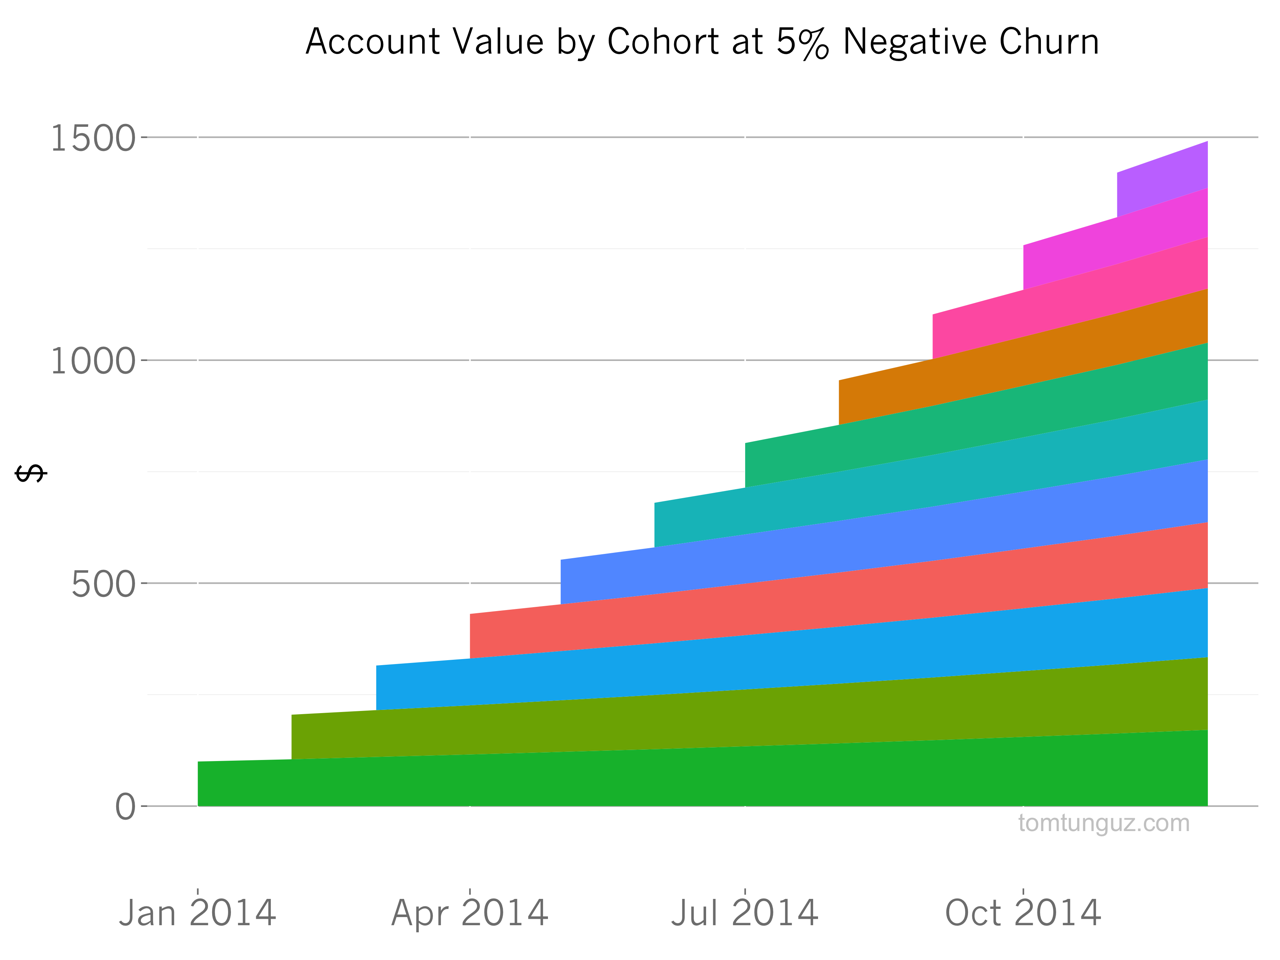 cohort 5% negative churn